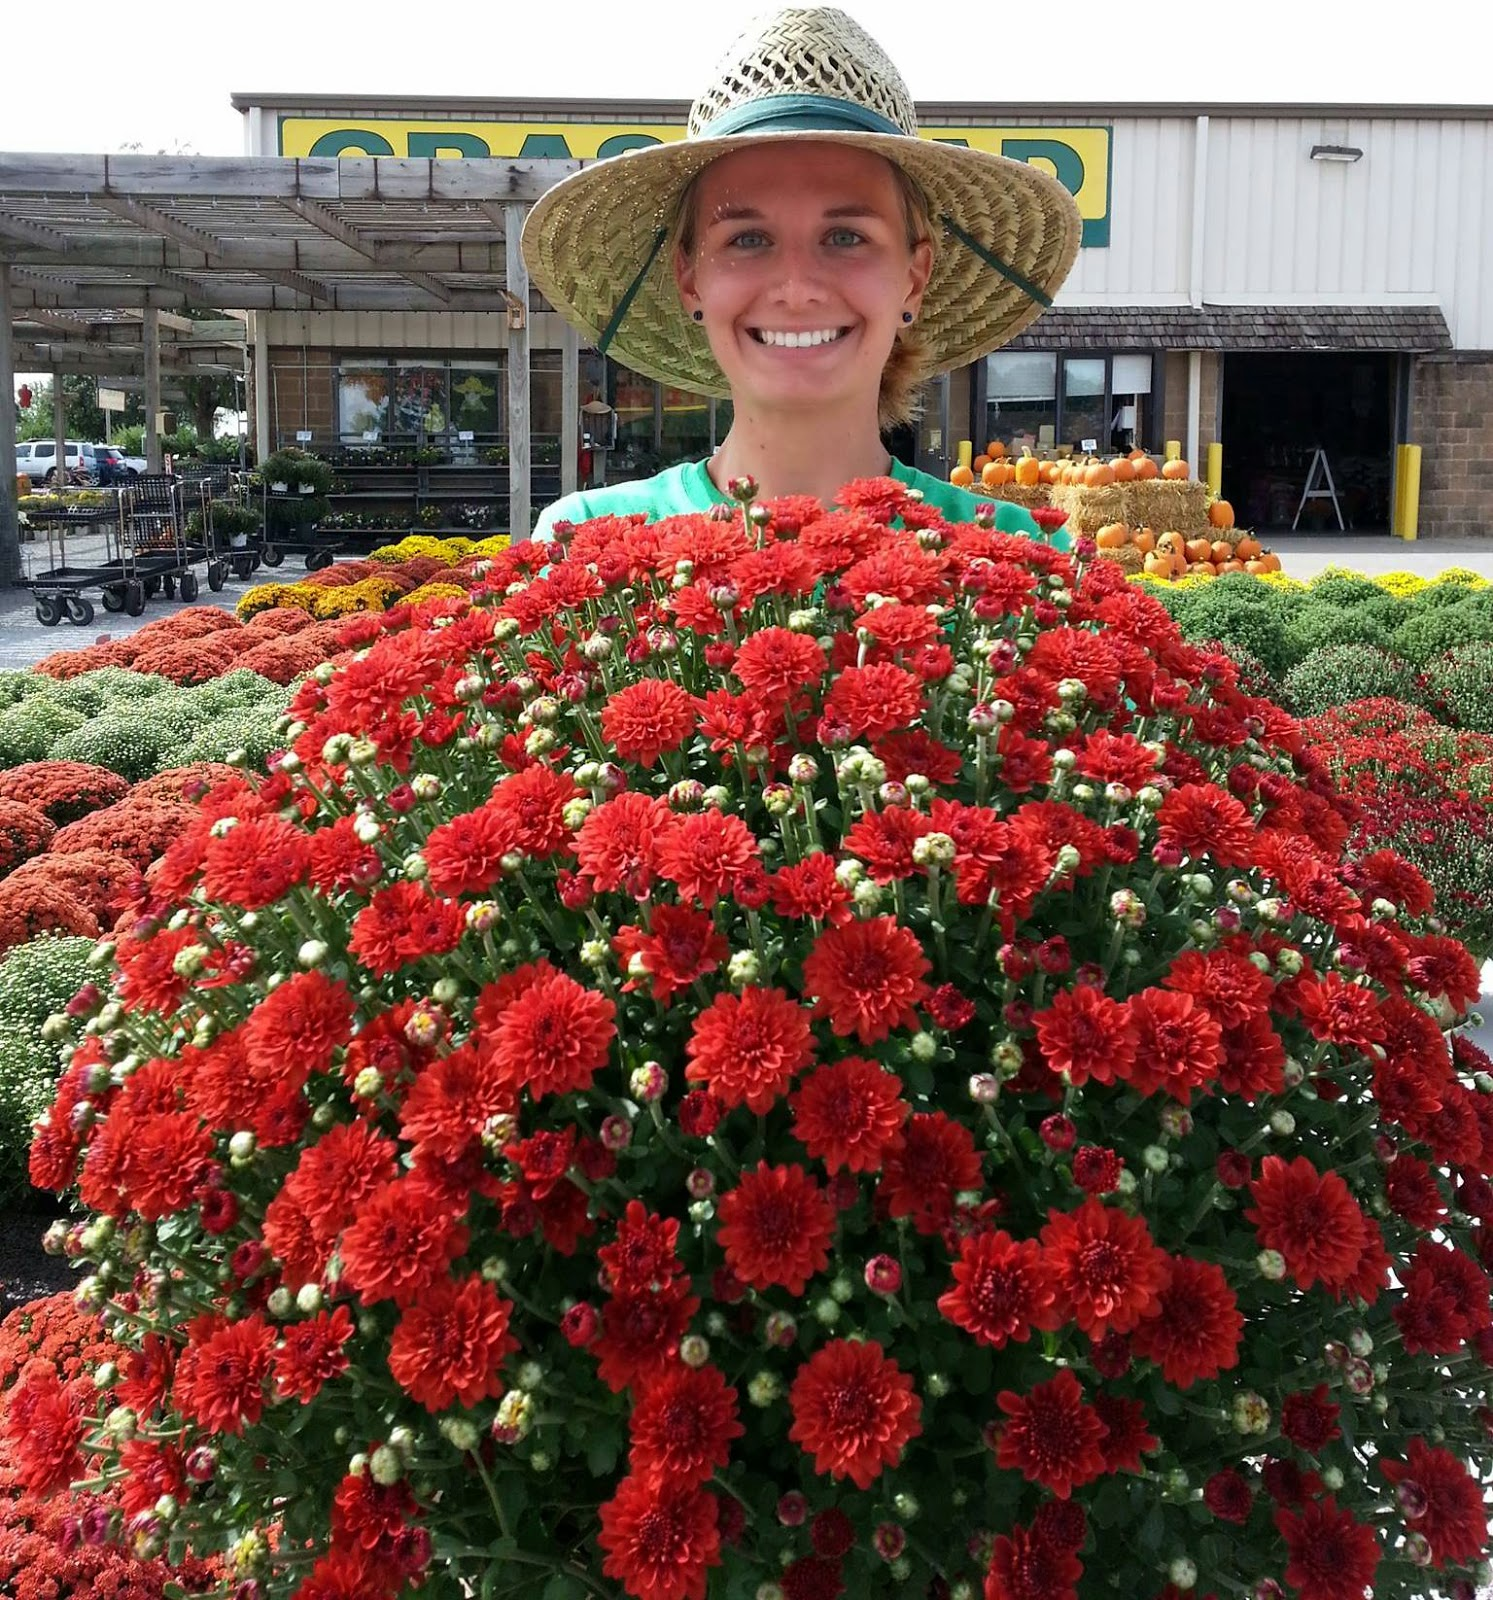 Revive Worn Out Planters And Flower Beds Using Colorful Fall Blooming Garden  Mums. Fresh Hardy Garden Mums In Brilliant Yellow, Oranges, Pinks, ...